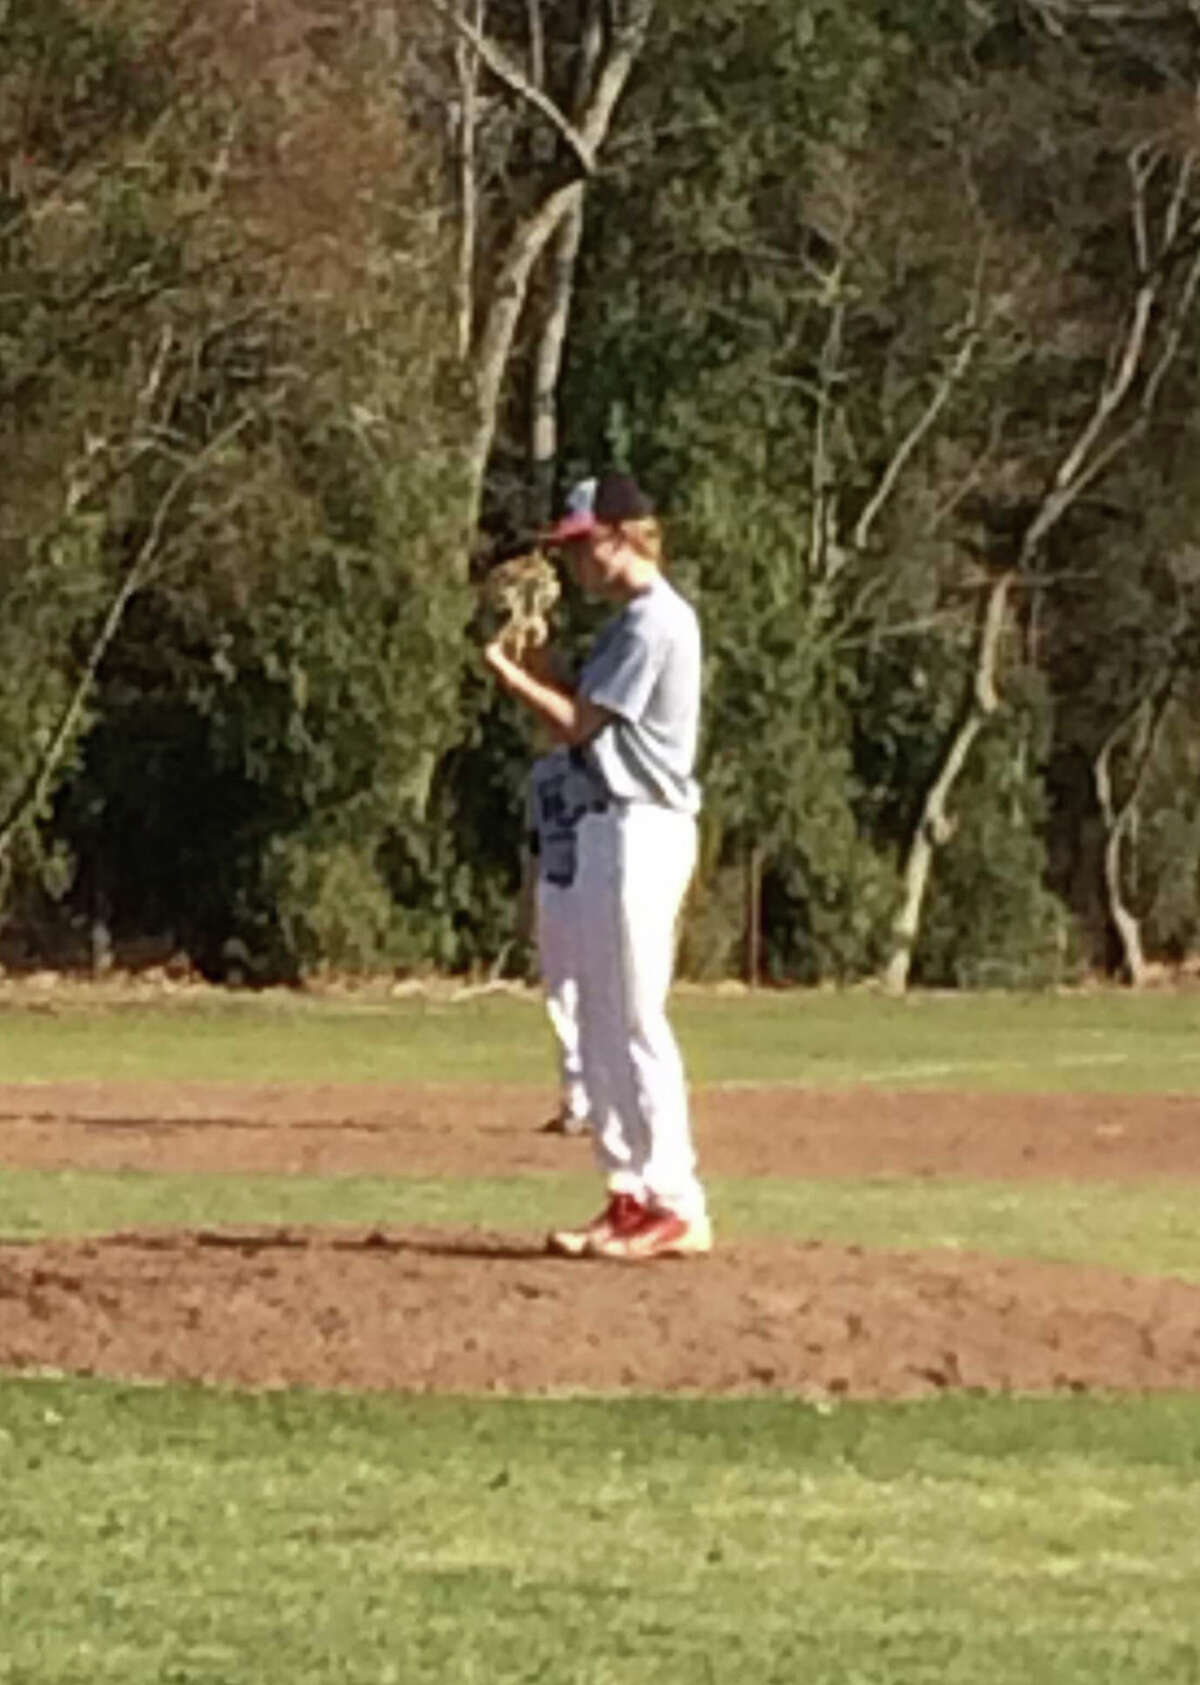 New Canaan's J.R. Anderson prepares to deliver a pitch in the early innings of his team's home scrimmage against Stamford at Mead Park on Wednesday, April 2.